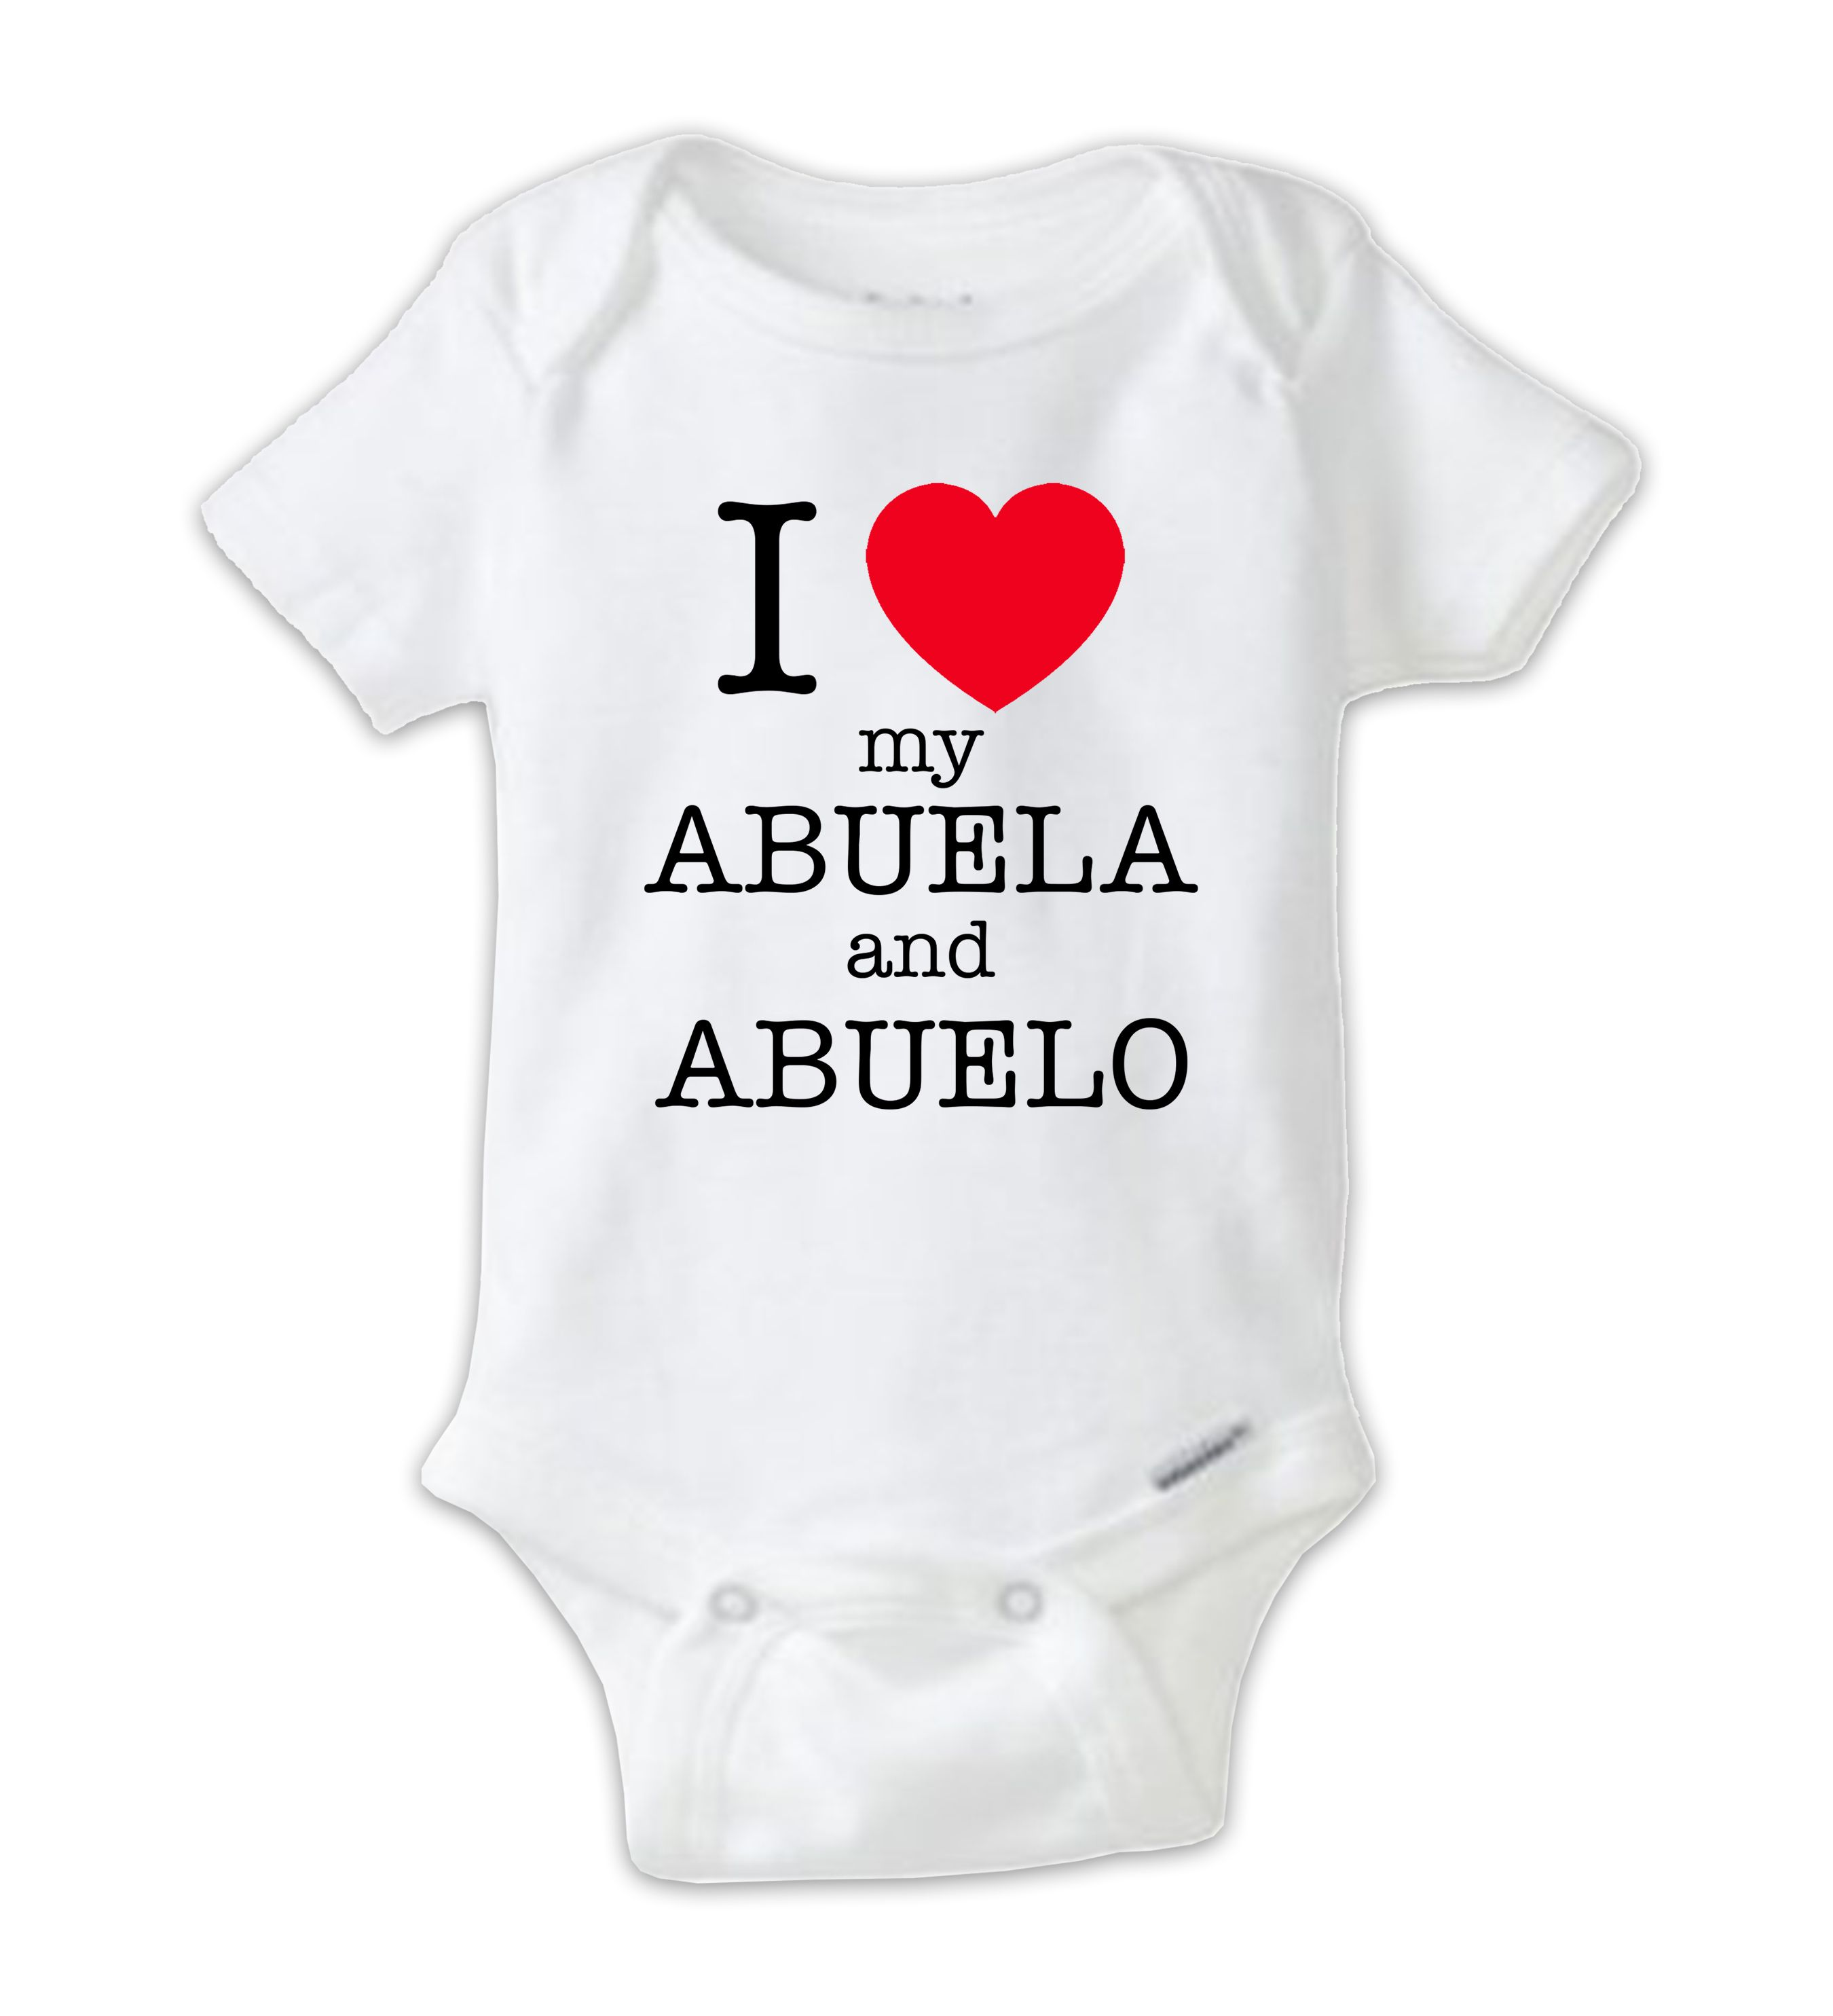 I love my abuela and abuelo spanish onesie baby clothes unique and funny baby onesies for any occasion great baby shower gifts and christmas gifts personalized baby bodysuits also available negle Images